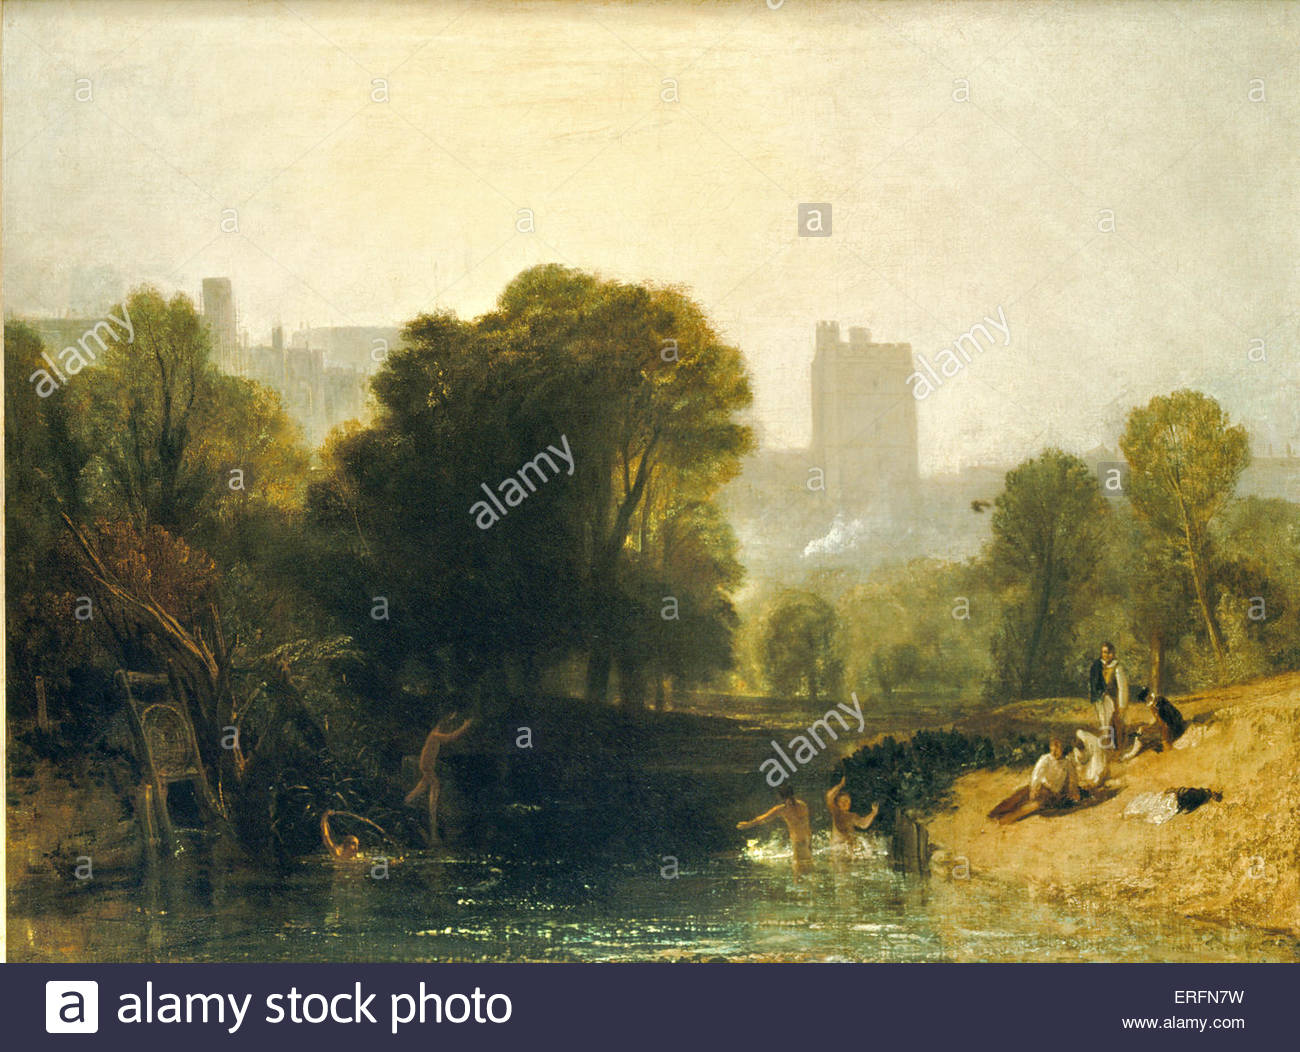 'Windsor Castle' - painting by Joseph Mallord William Turner. JMWT, English painter: 1775 - 1851. - Stock Image